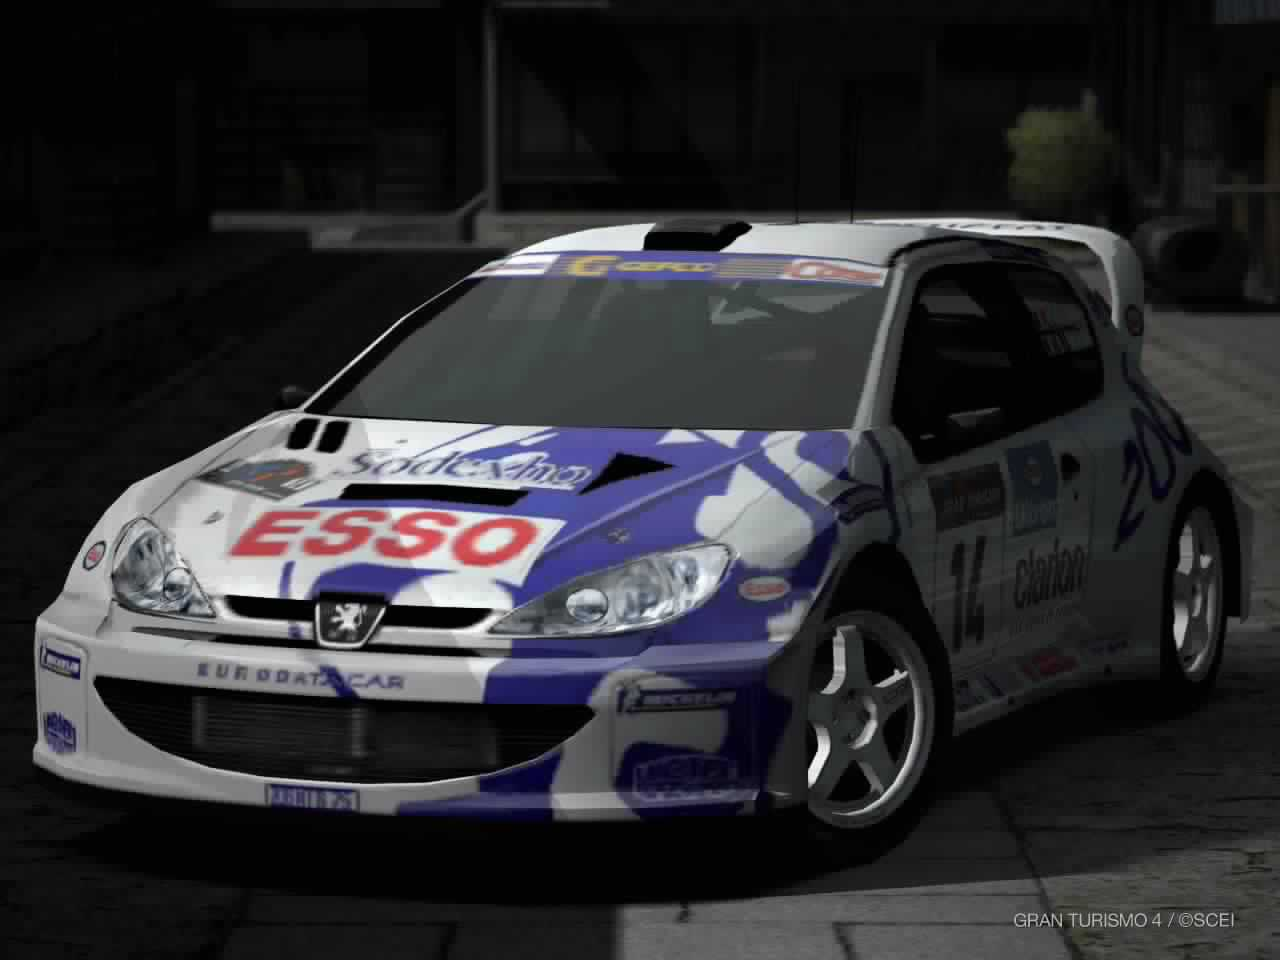 The Peugeot 206 rally car with Esso branding in the NTSC-J, PAL and NTSC-K  (Korean) versions of Gran Turismo 4